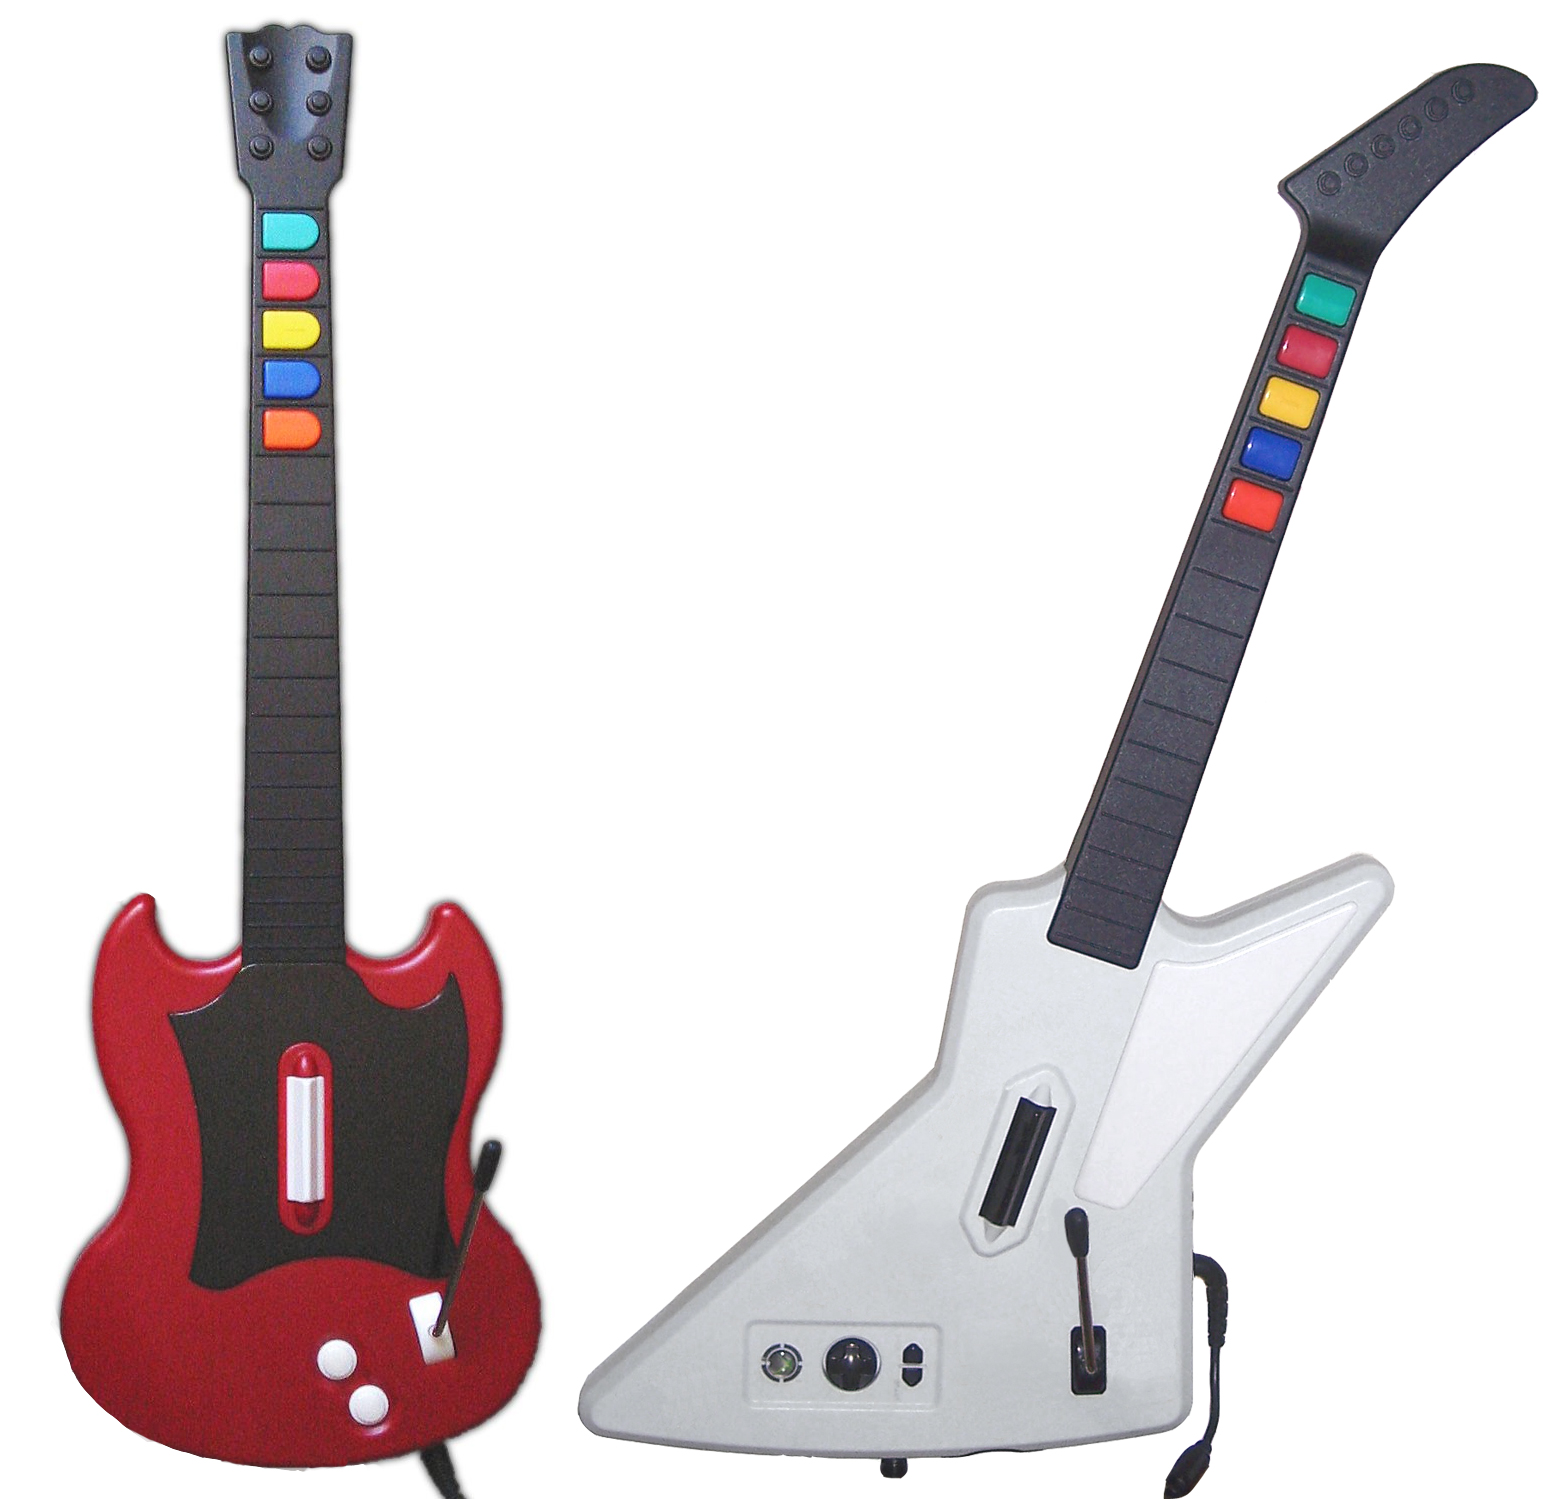 I love guitar hero watch the end 3